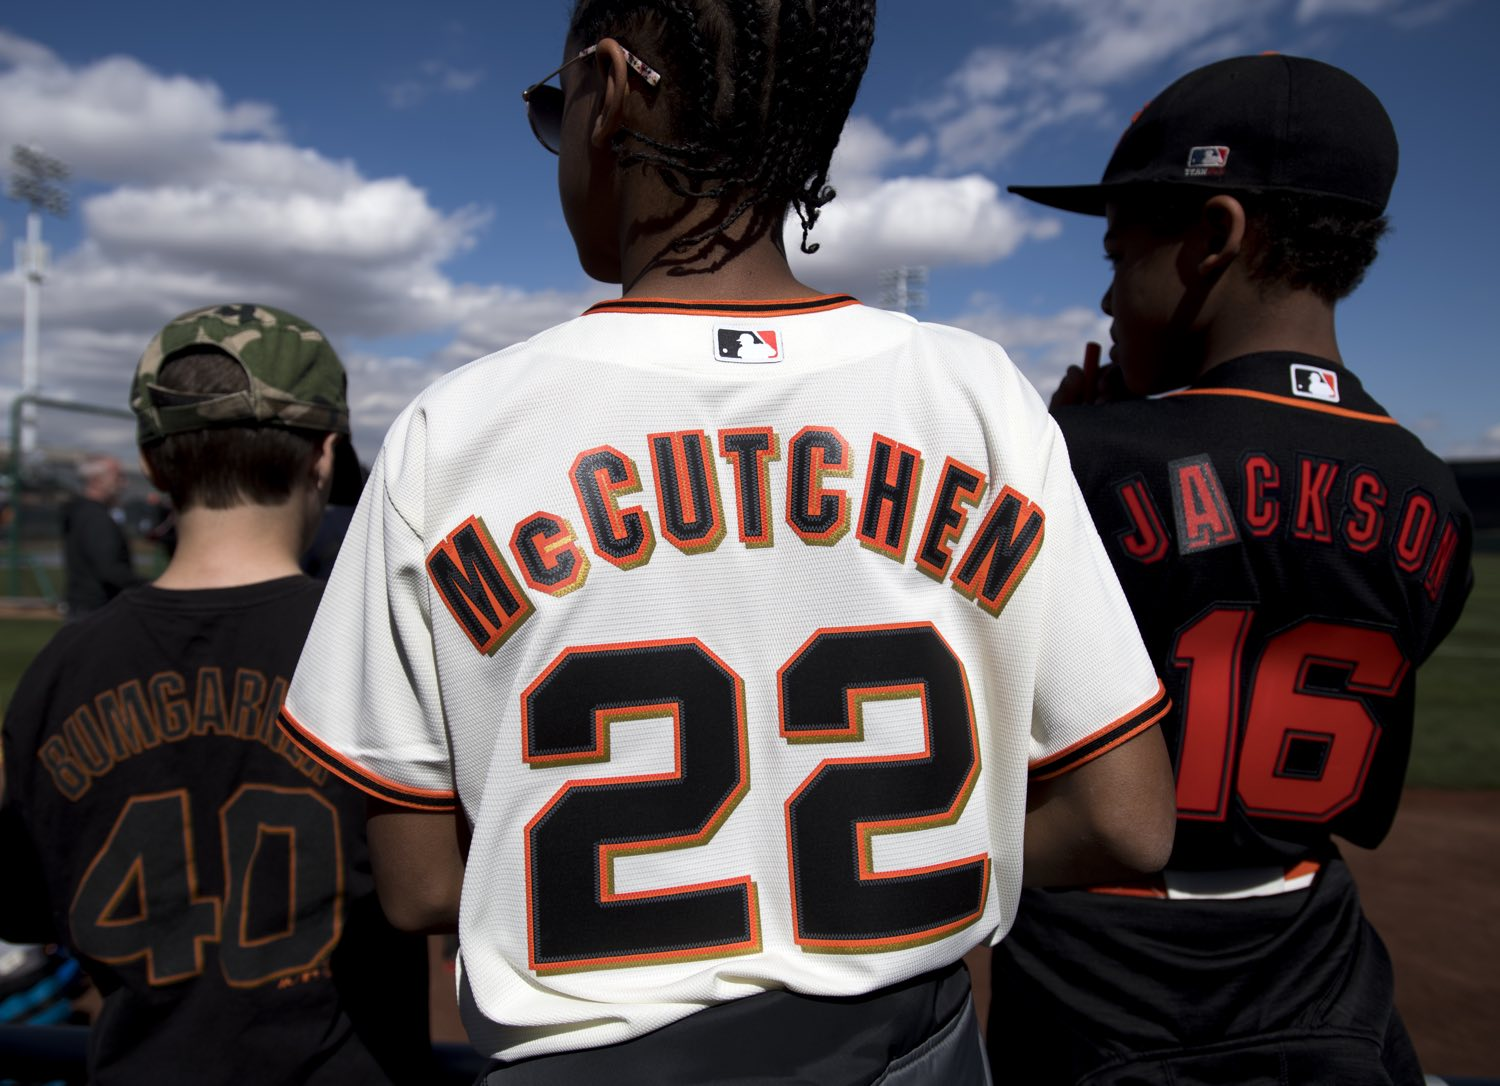 finest selection 432eb 8d6b0 As Andrew McCutchen moves on, he can't help but take ...